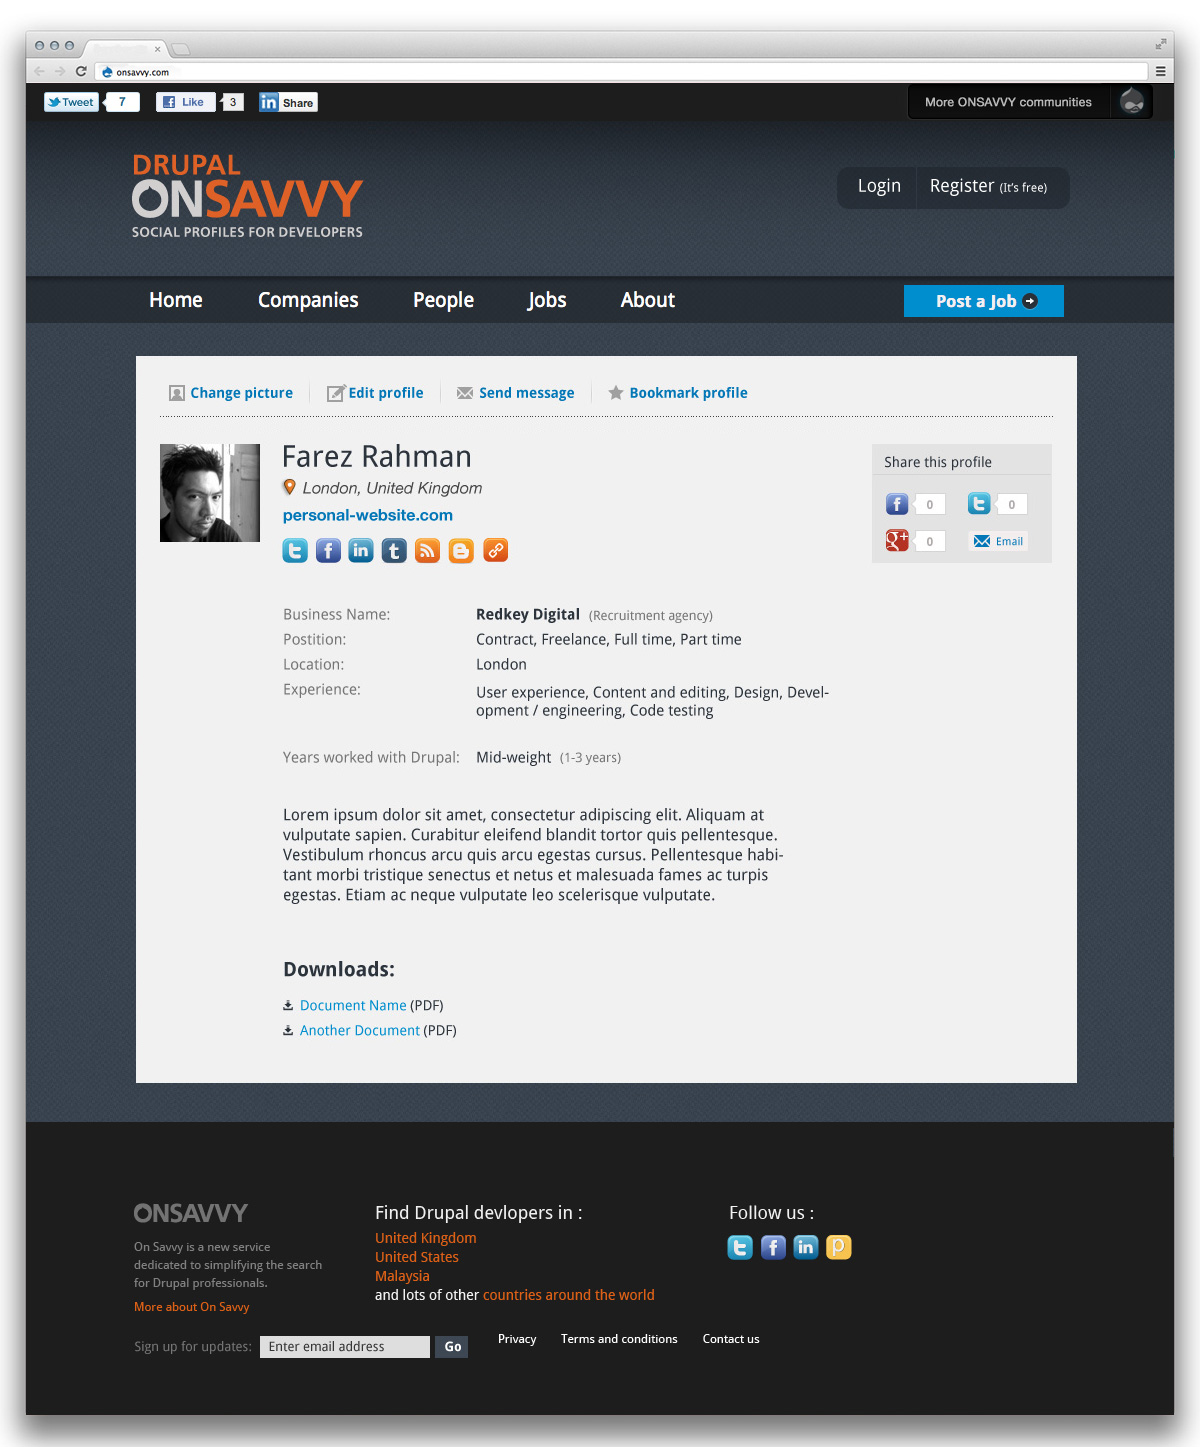 Drupal on Savvy profile page